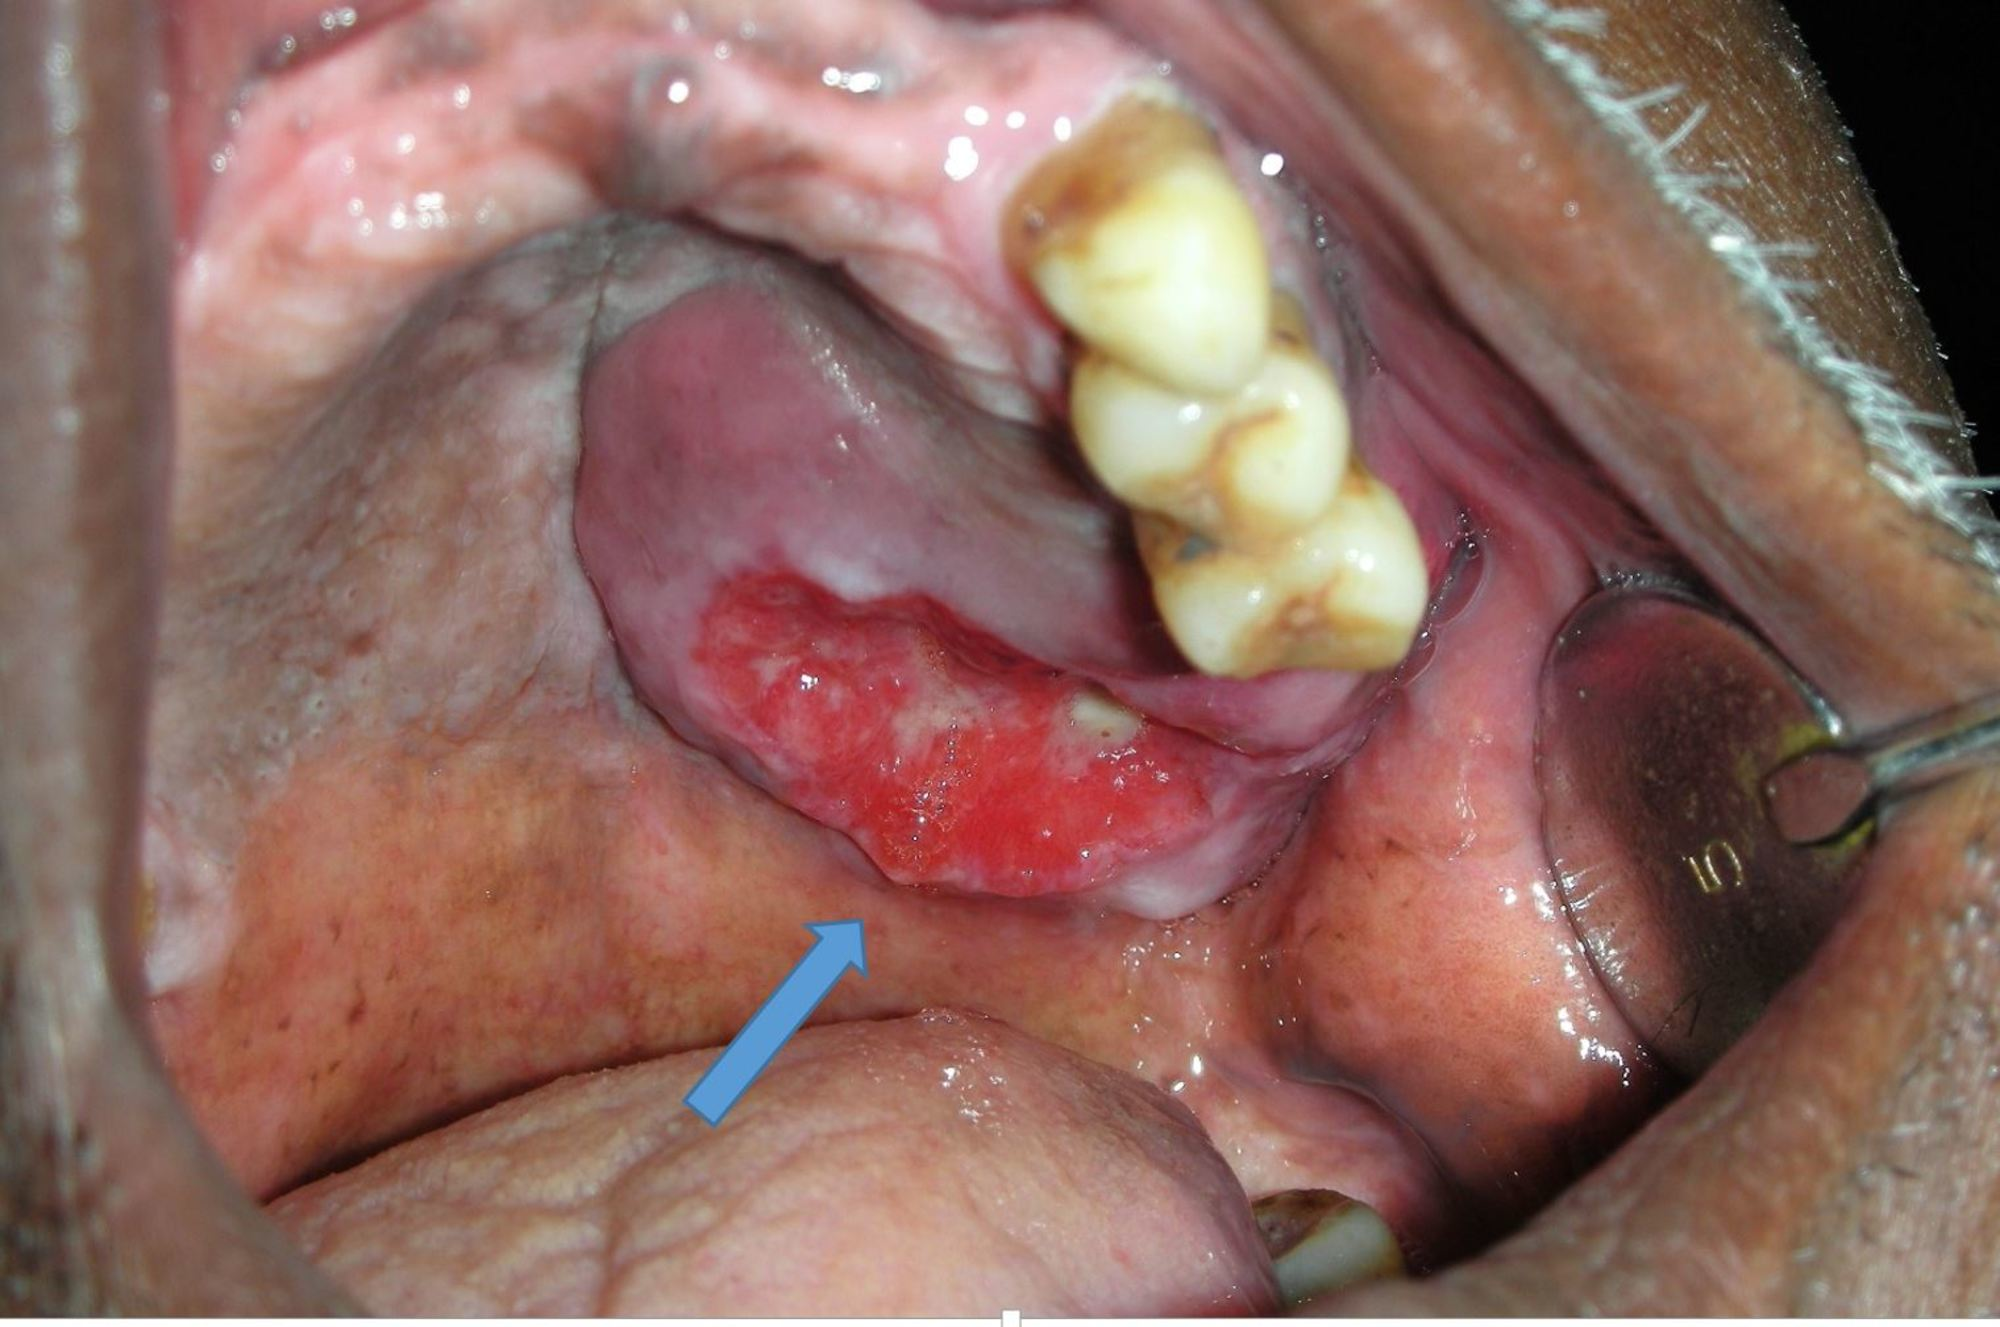 metastatic cancer from sinus